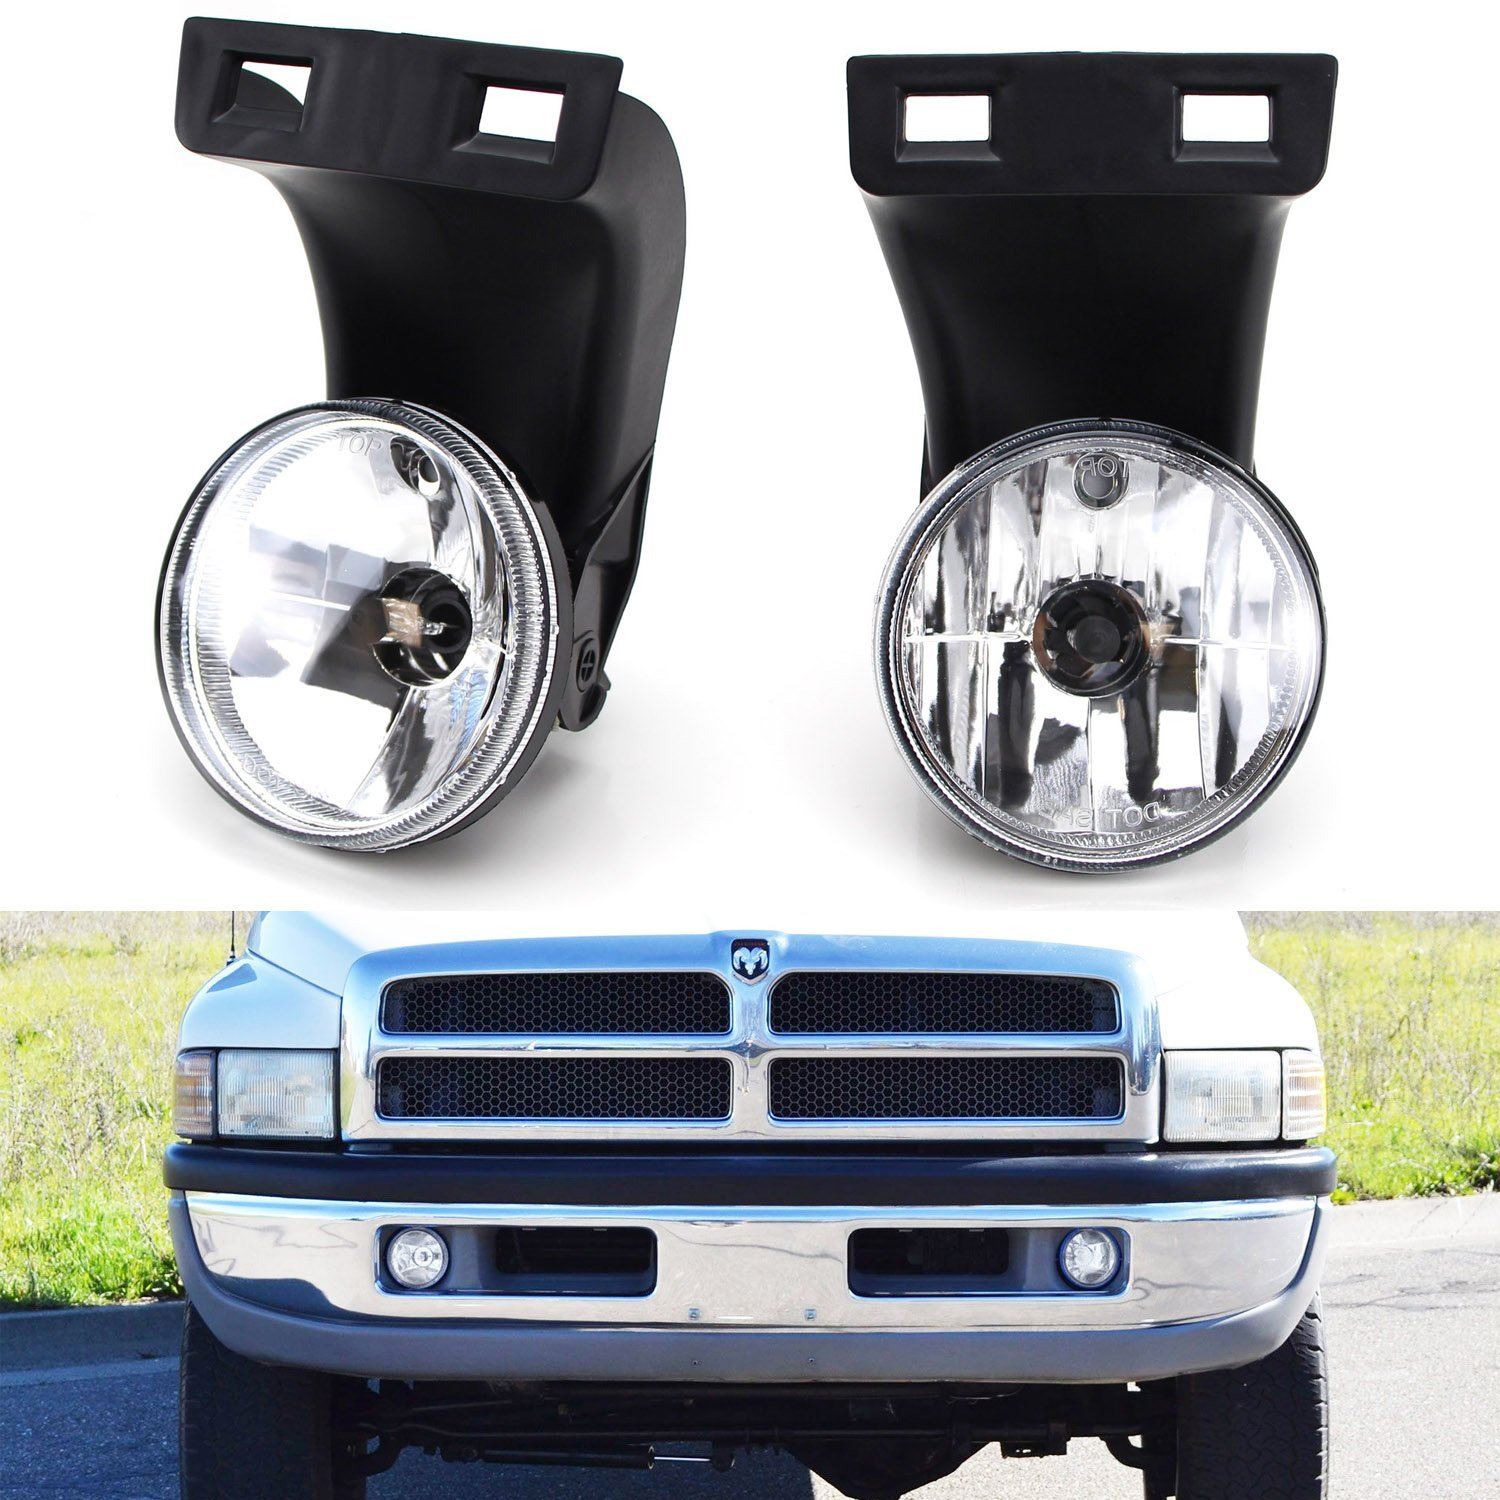 Ijdmtoy Complete Set Fog Lights Foglamps With 880 Halogen Bulbs For 2nd Gen 1994 2001 Dodge Ram 1500 1994 2002 Ram 2500 3500 Walmart Com Walmart Com